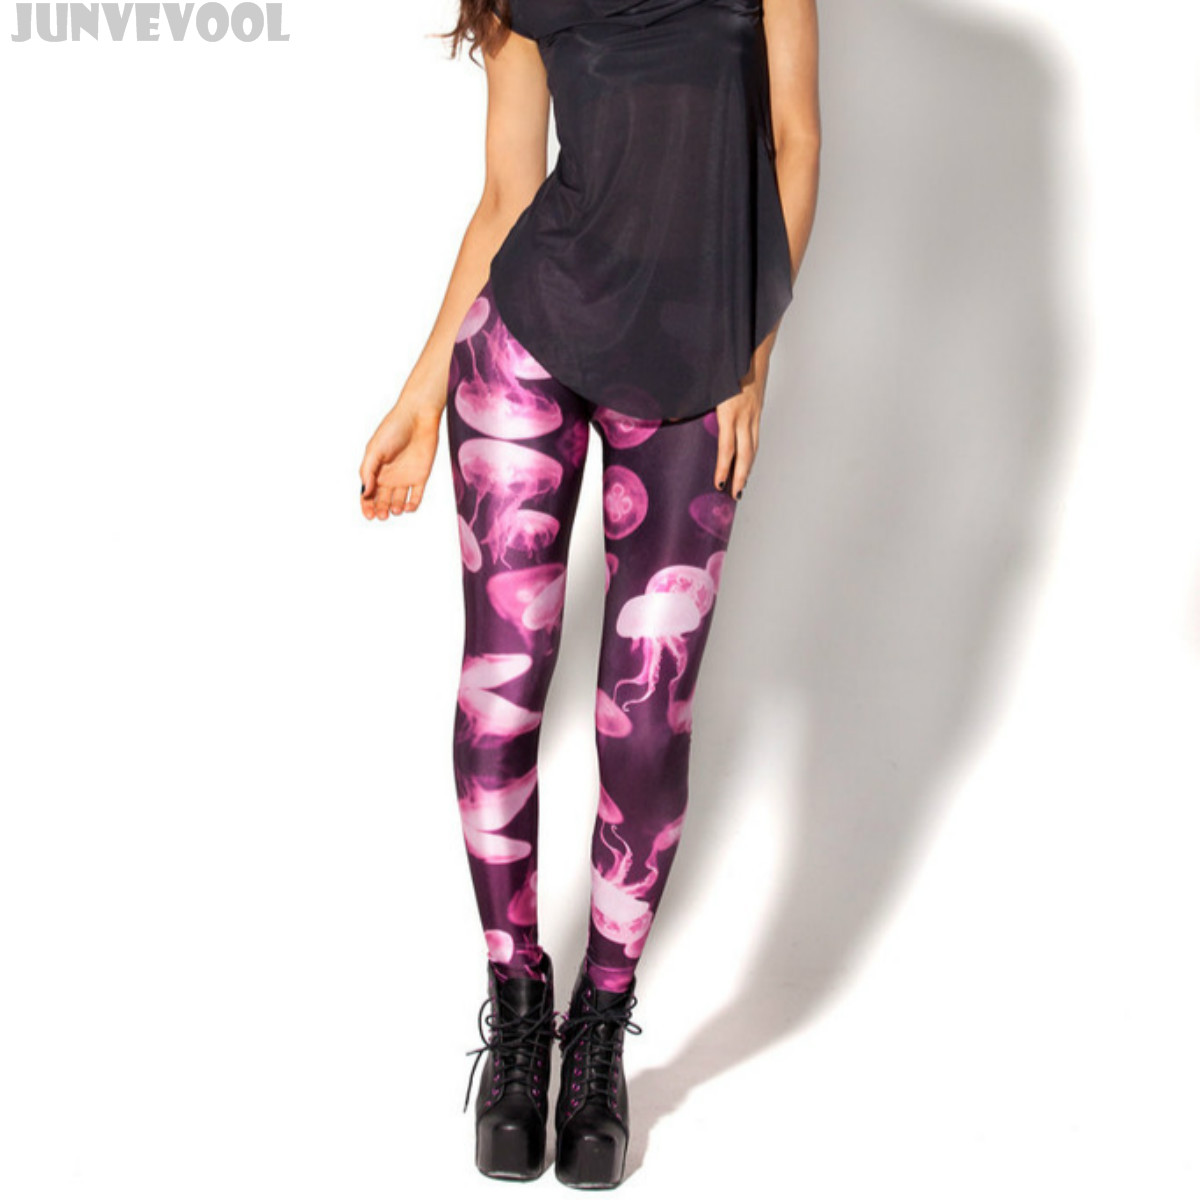 Available In Black, Grey, Navy, And Neon Pink Full Length 3